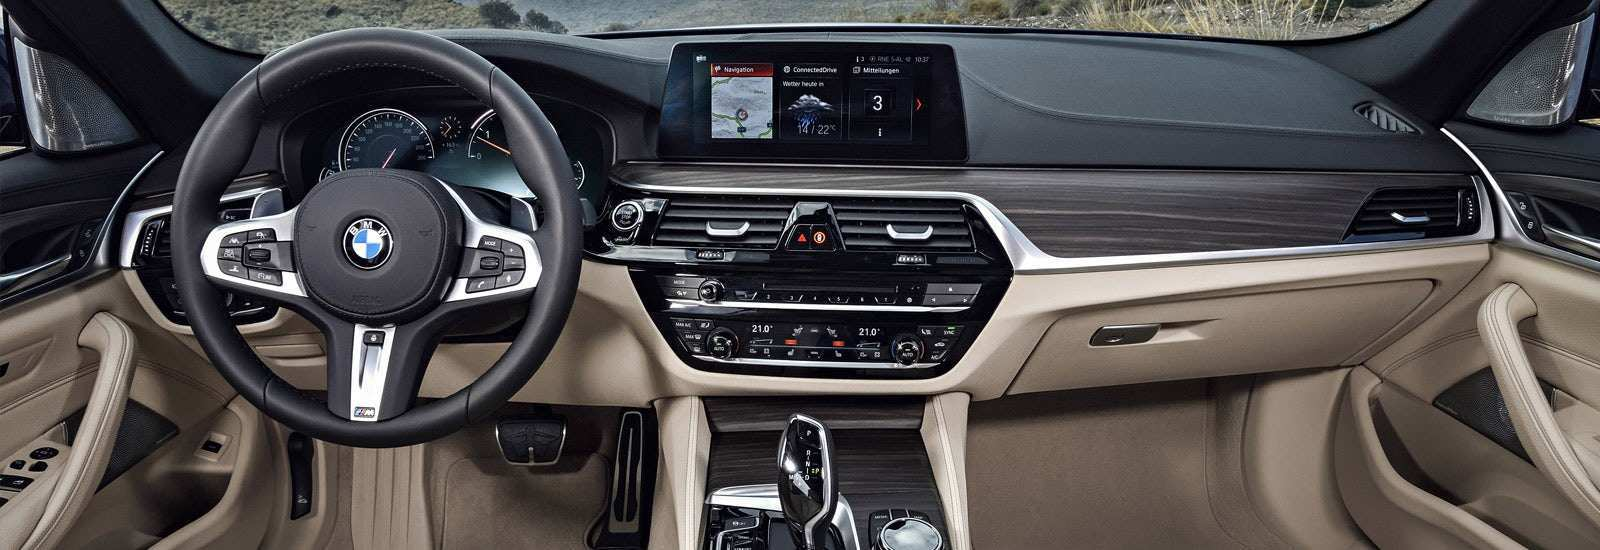 94 Best Review 2019 Bmw 1 Series Interior Style with 2019 Bmw 1 Series Interior